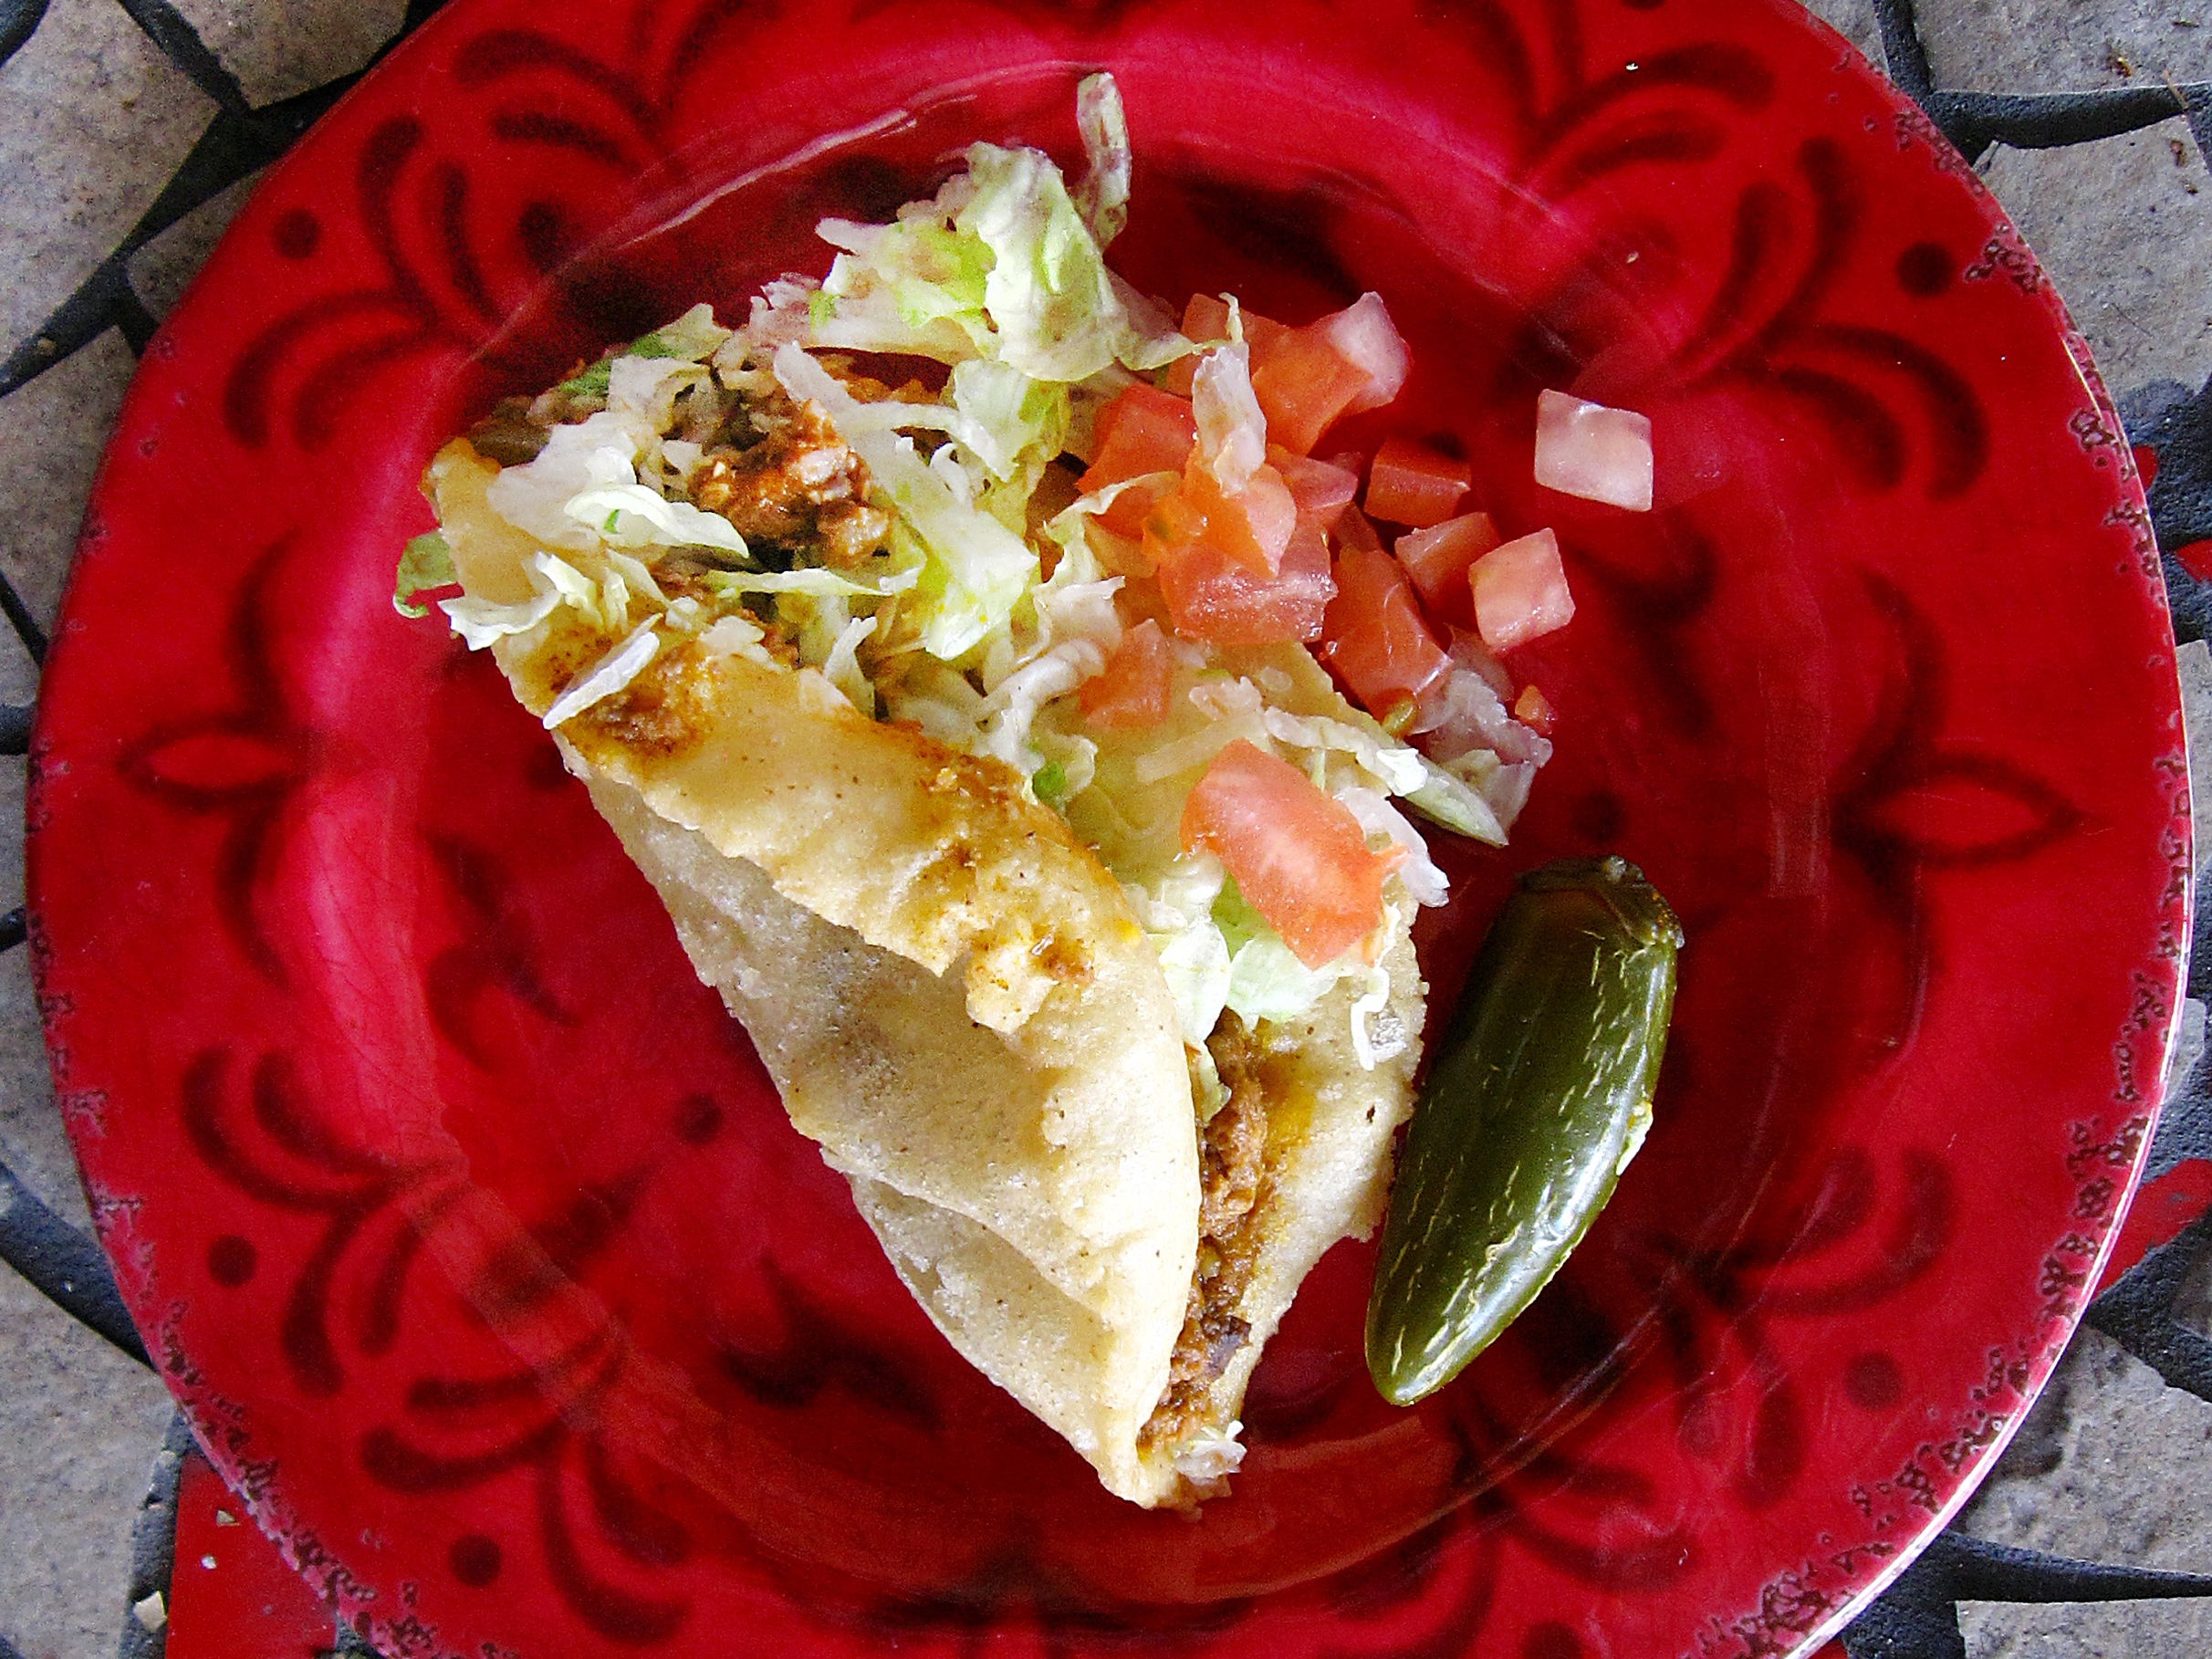 This Food Critic Will Take The Taco. Again. And Again. And Again.